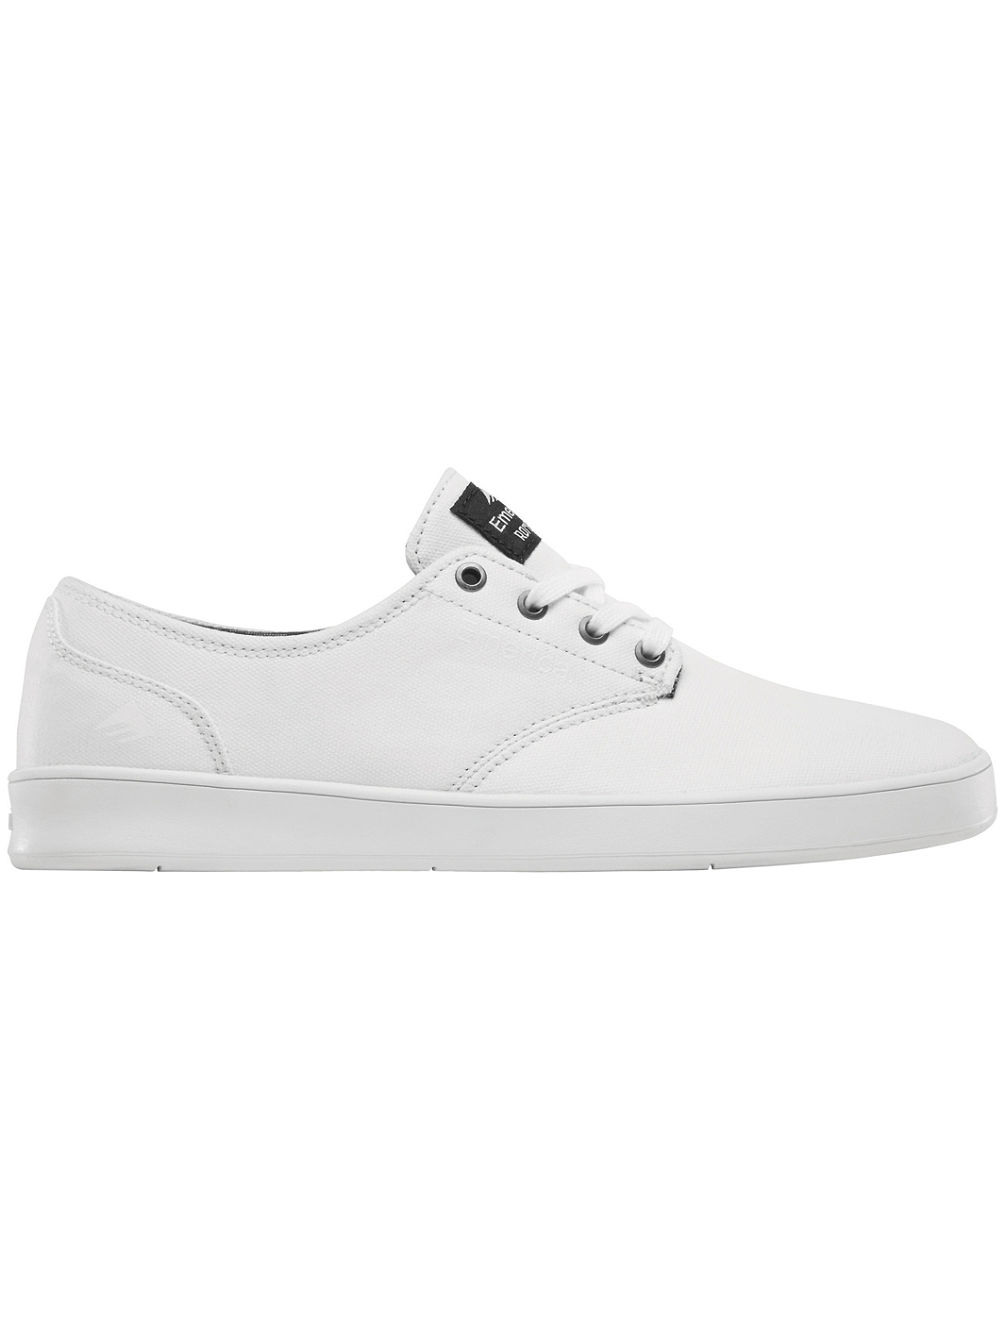 The Romero Laced Skate Shoes